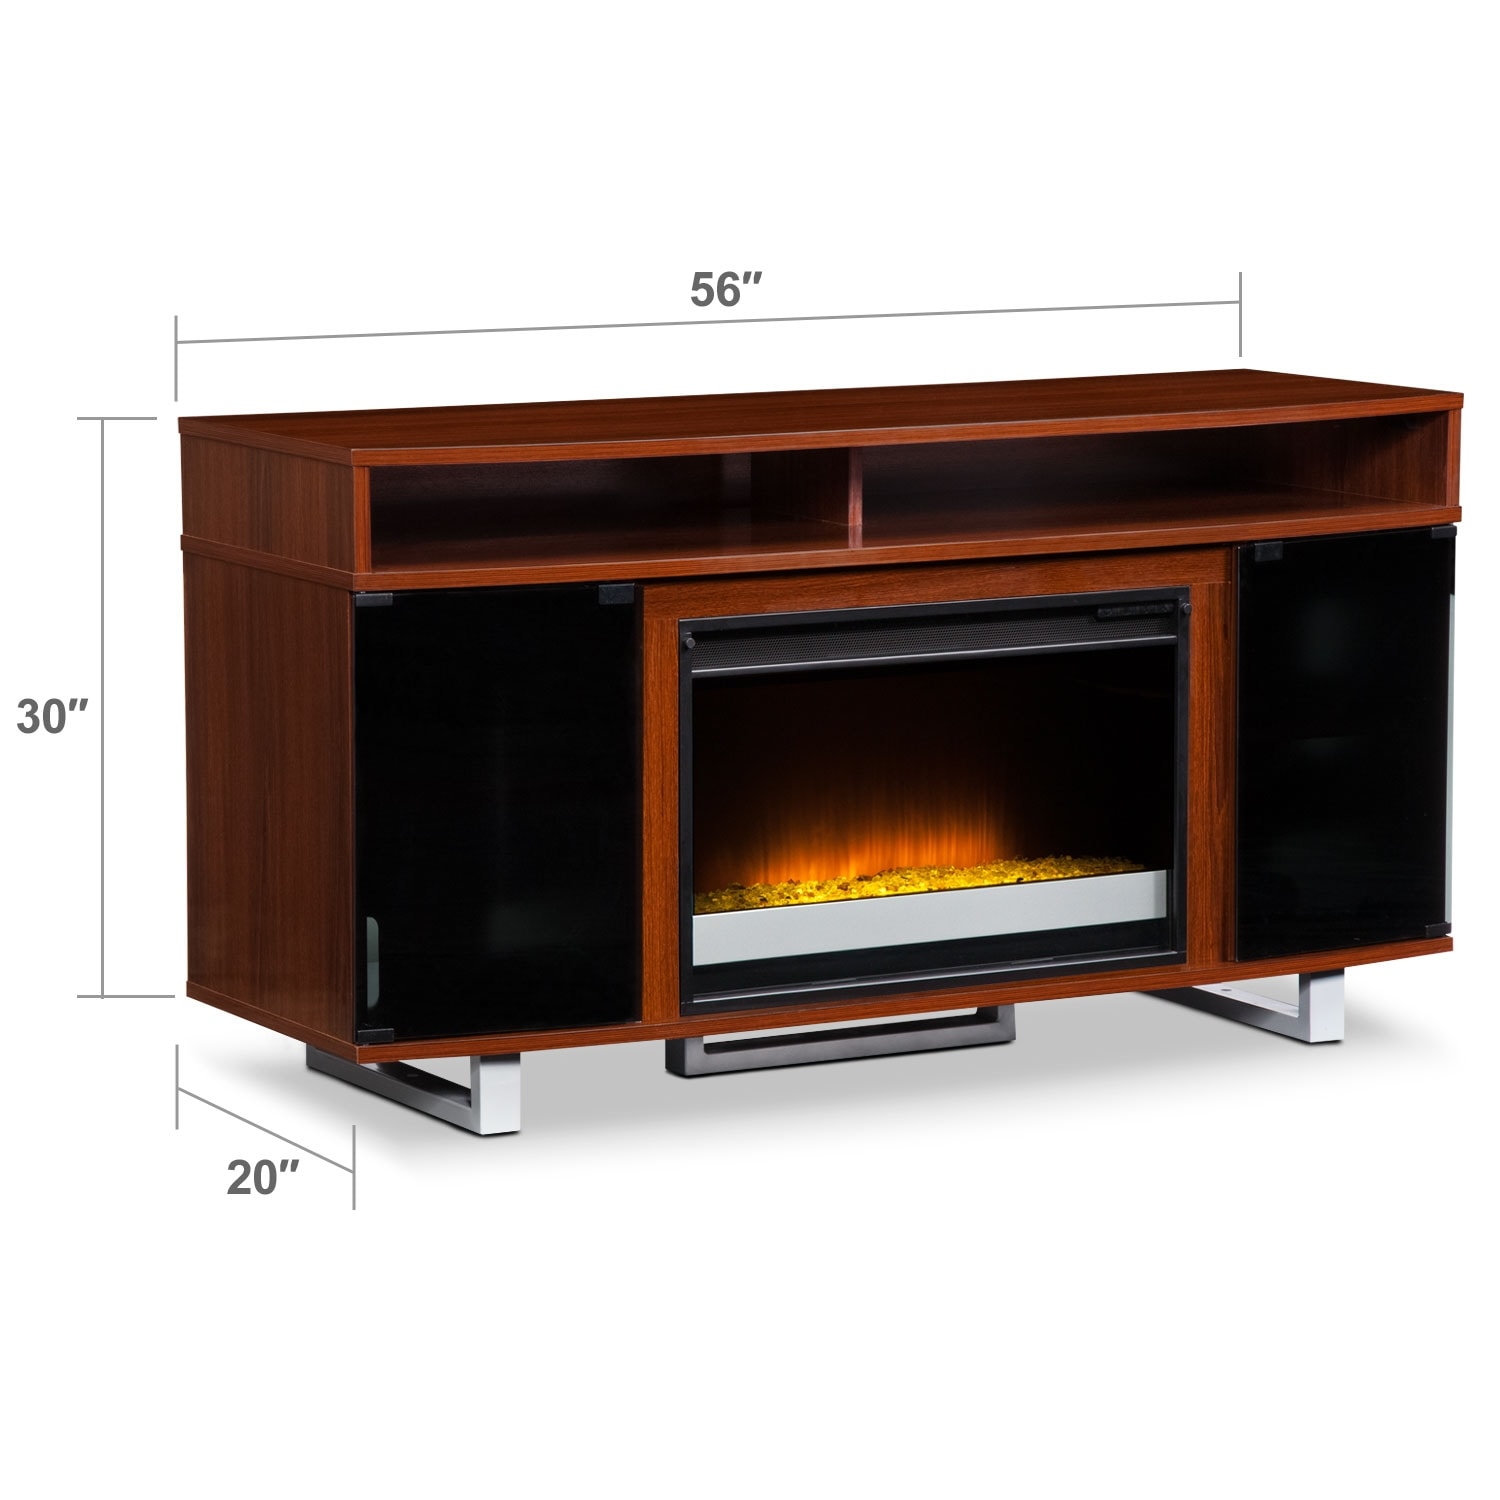 Pacer 56 contemporary fireplace tv stand cherry for American furniture warehouse tv stands